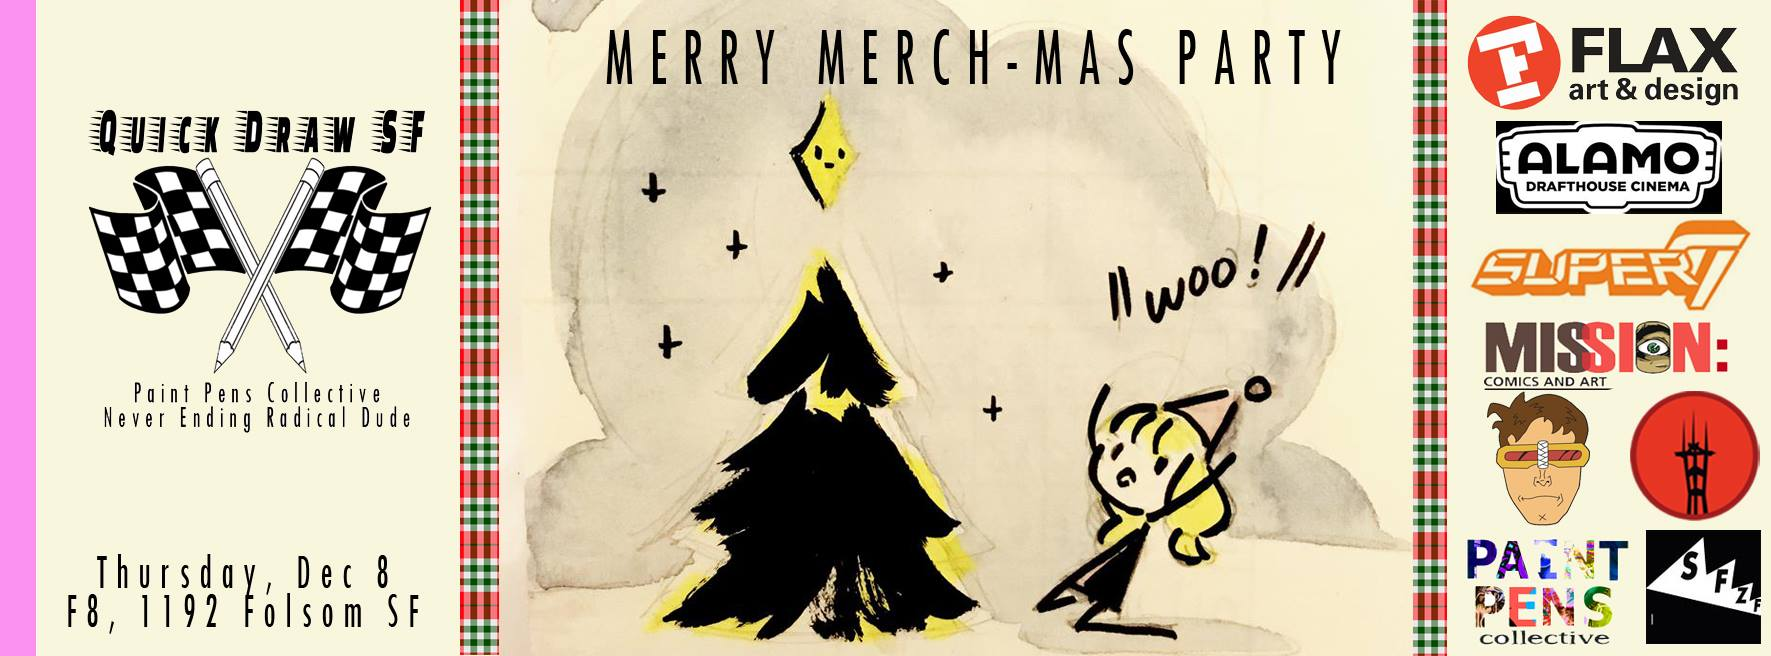 quick-draw-sf-merch-mas-2